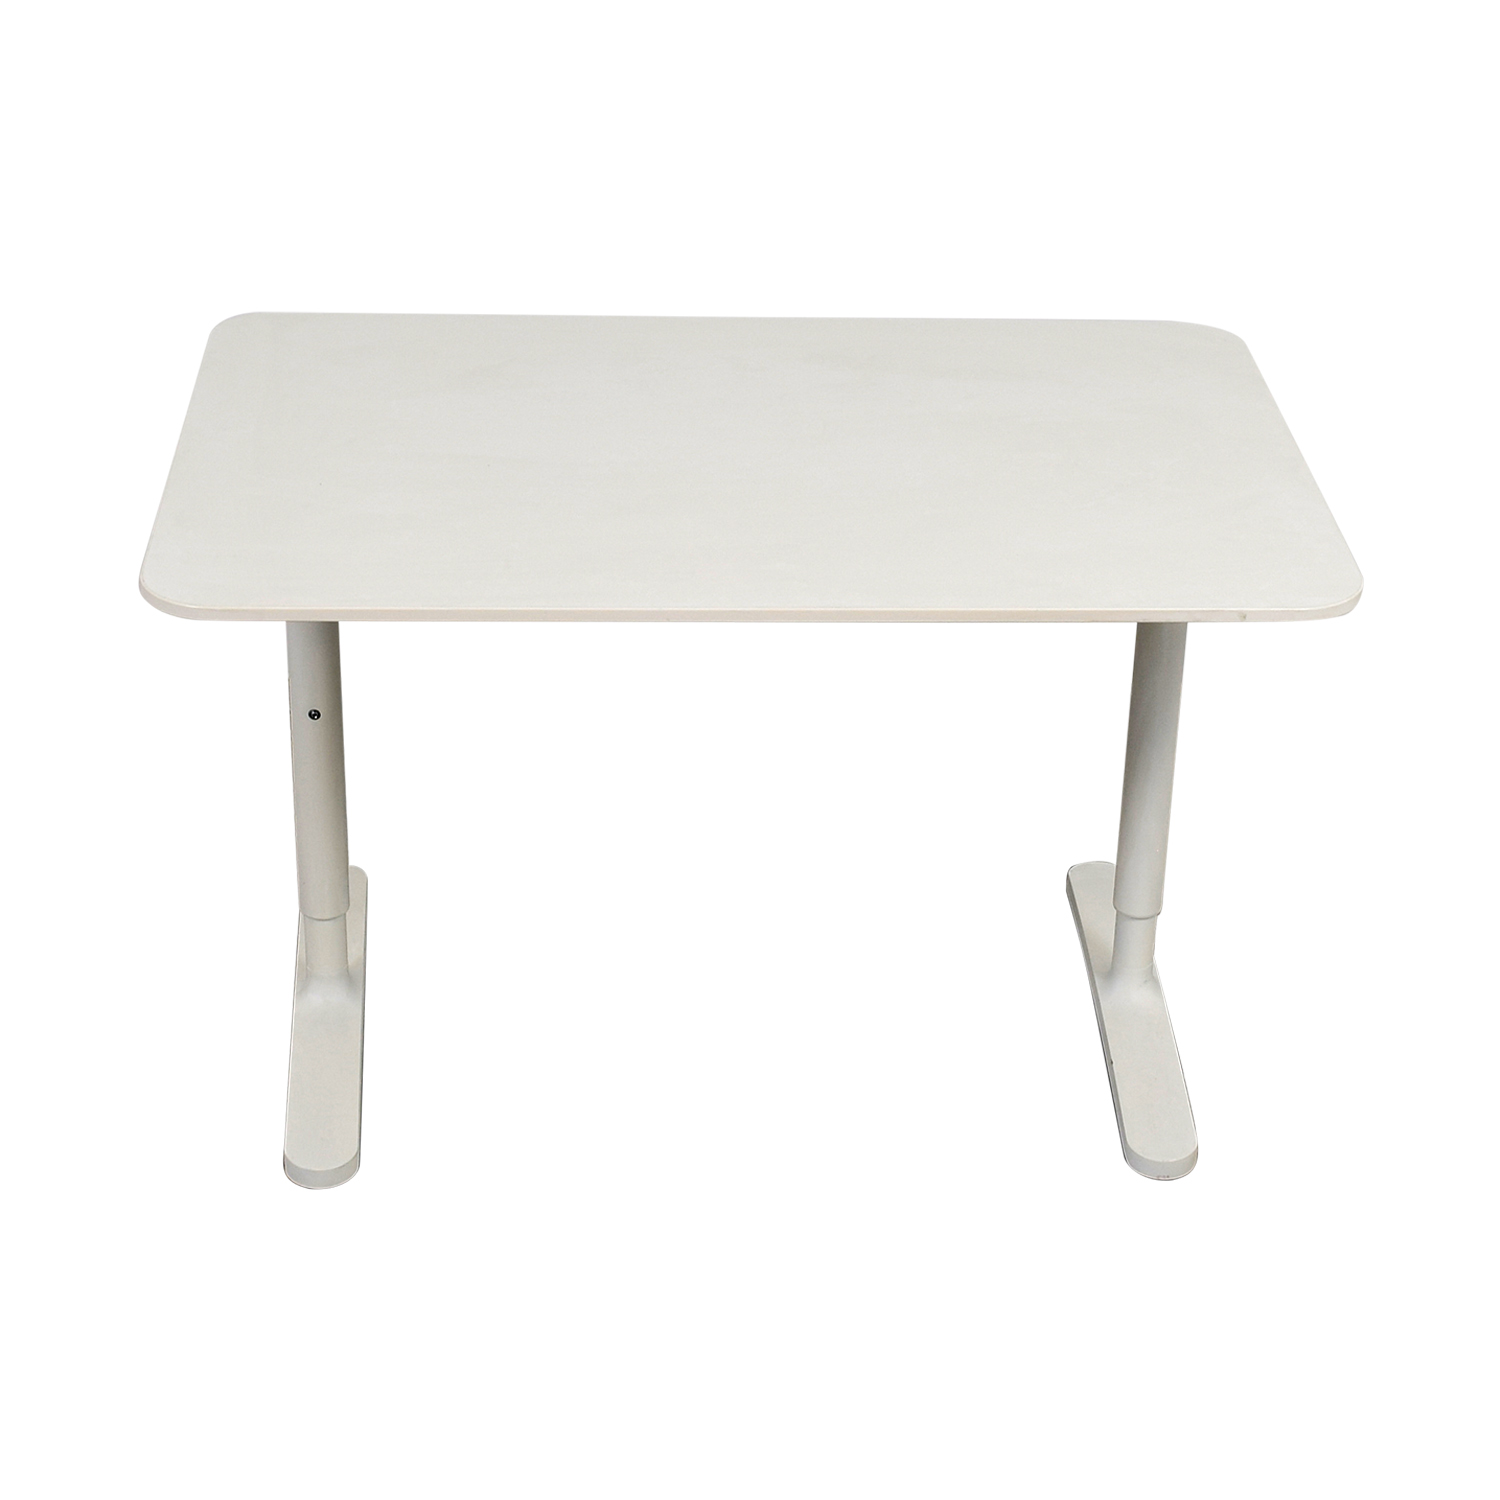 IKEA IKEA Bekant White Desk nyc